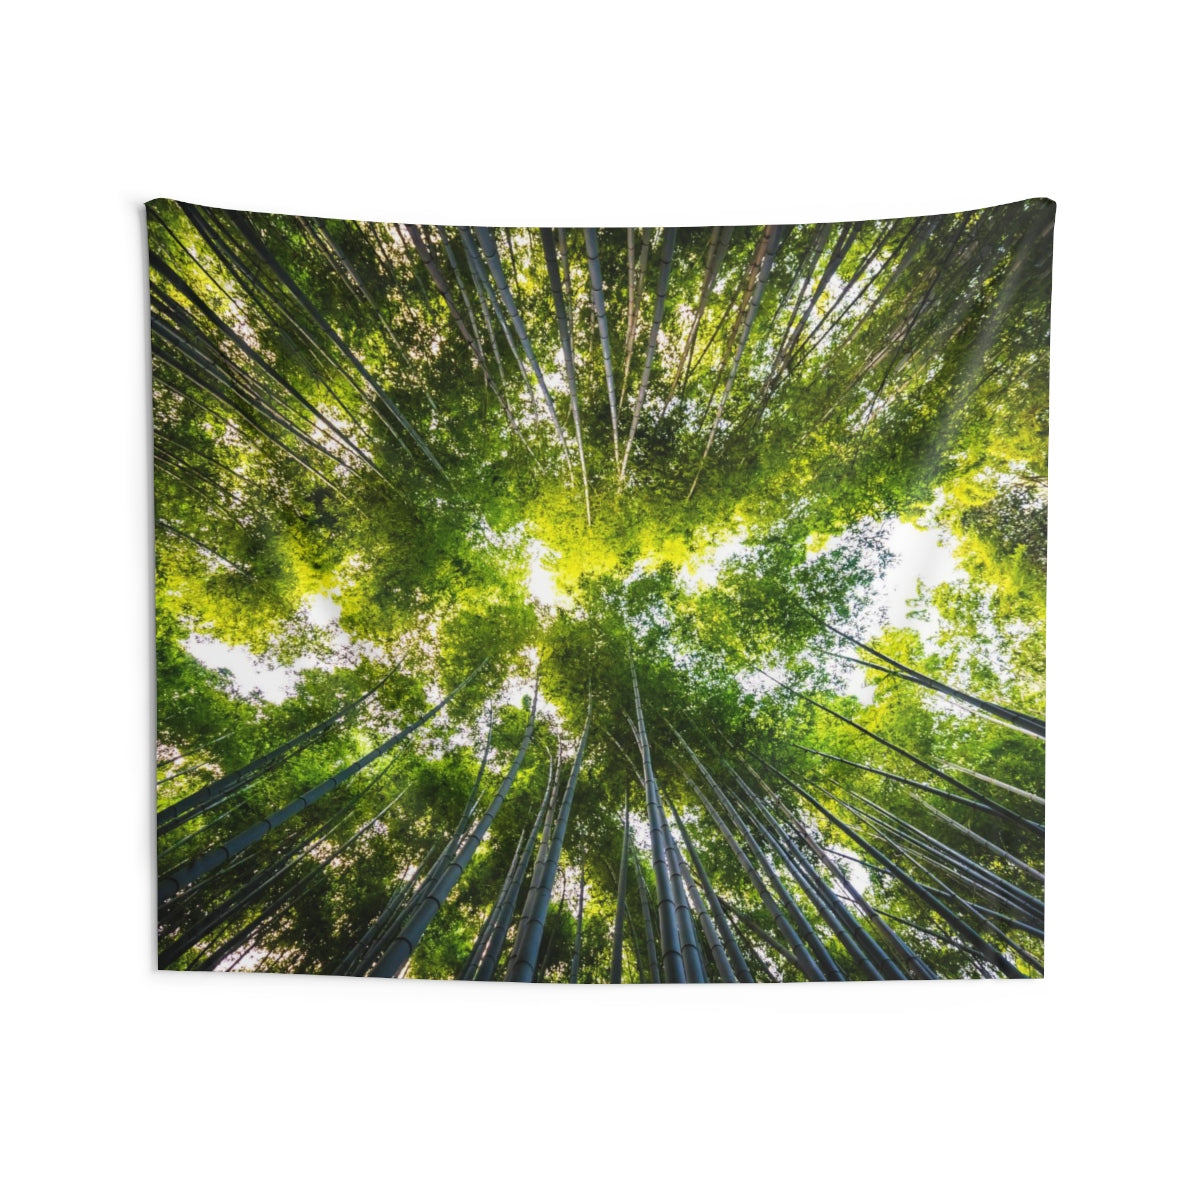 Bamboo Forest Trees Tapestry, Green Nature Japan Zen Landscape Indoor Wall Art Hanging Tapestries Decor - Starcove Design